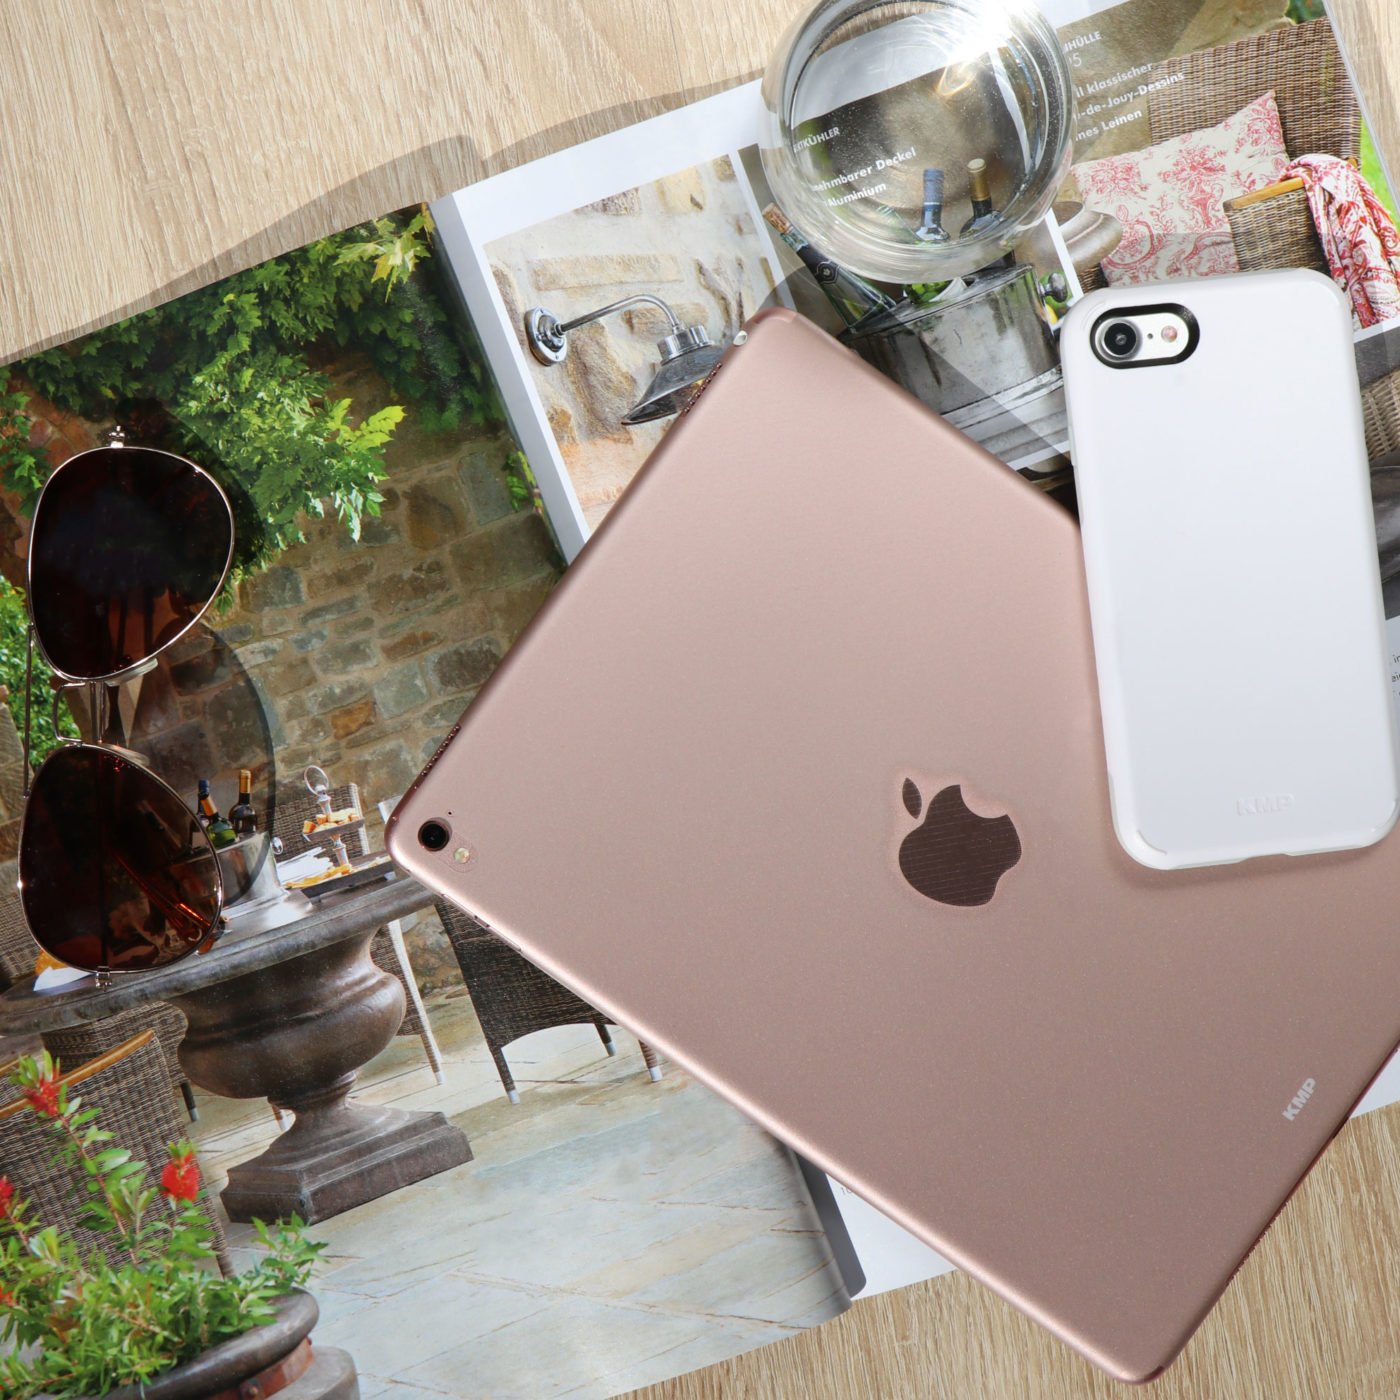 Skin rosègold iPad mini, Sporty Case iPhone 7